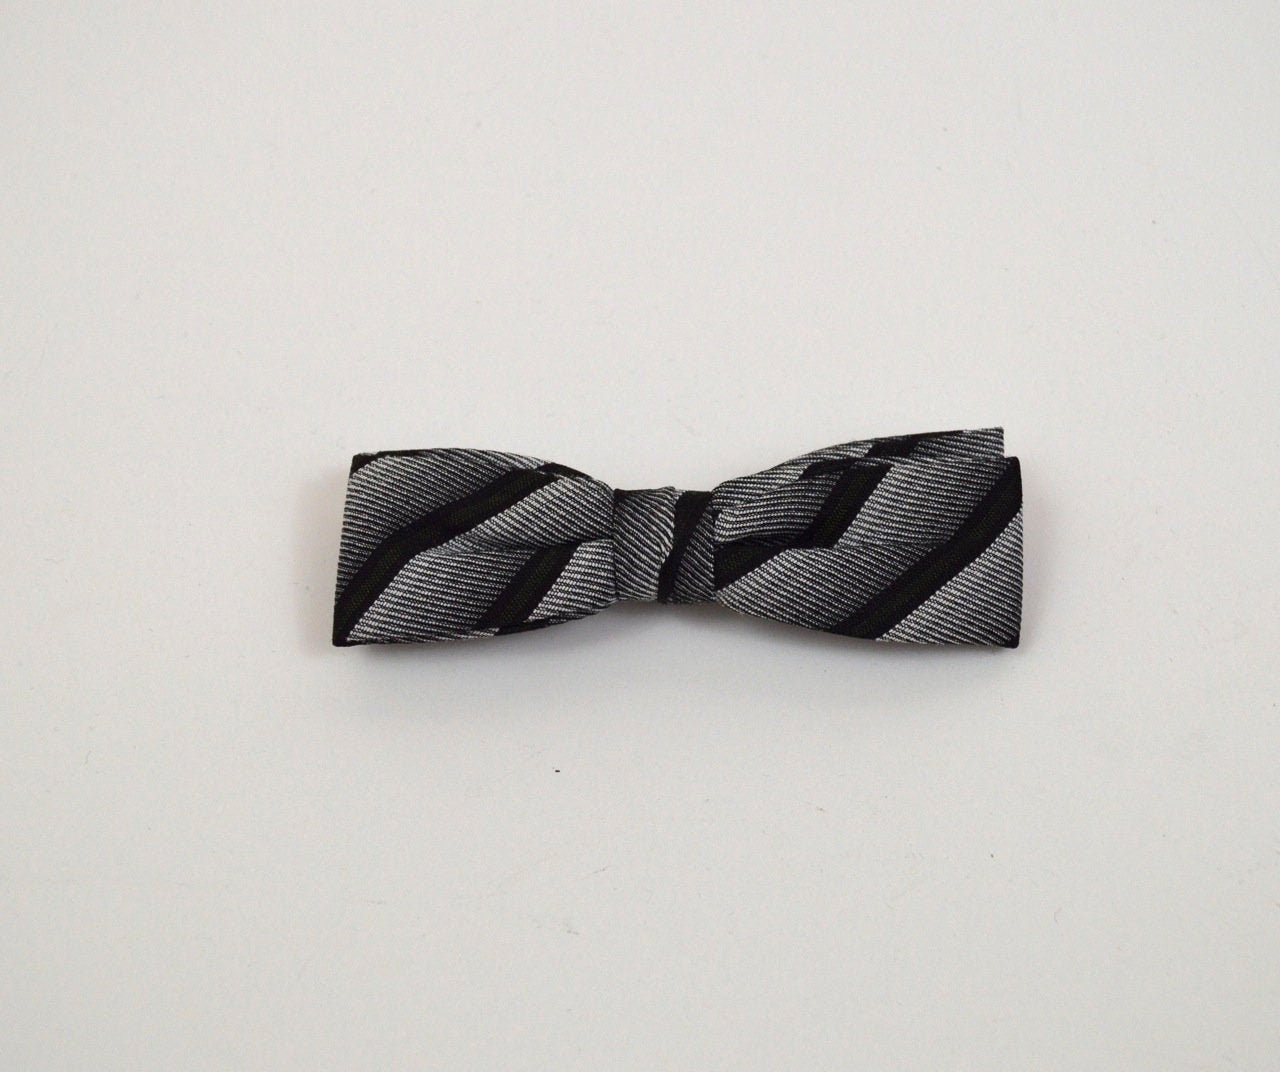 Vintage 1950s/1960s Charcoal and White Striped Clip on Bow Tie